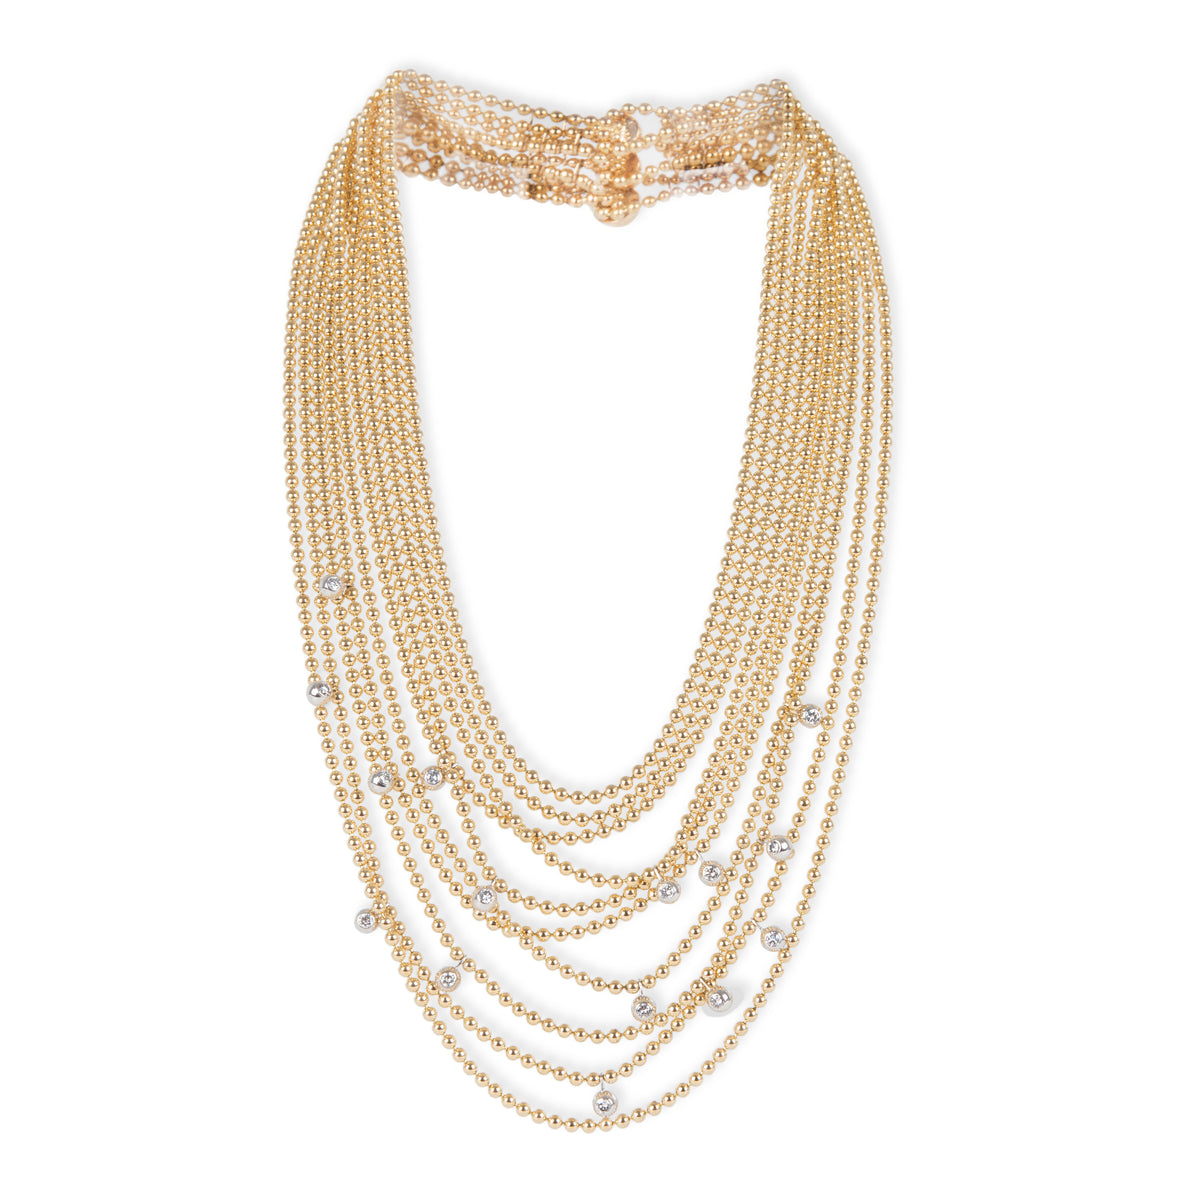 Cartier Diamond Draperie De Decollete Necklace in 18K 2 Tone Gold 0.6 CTW